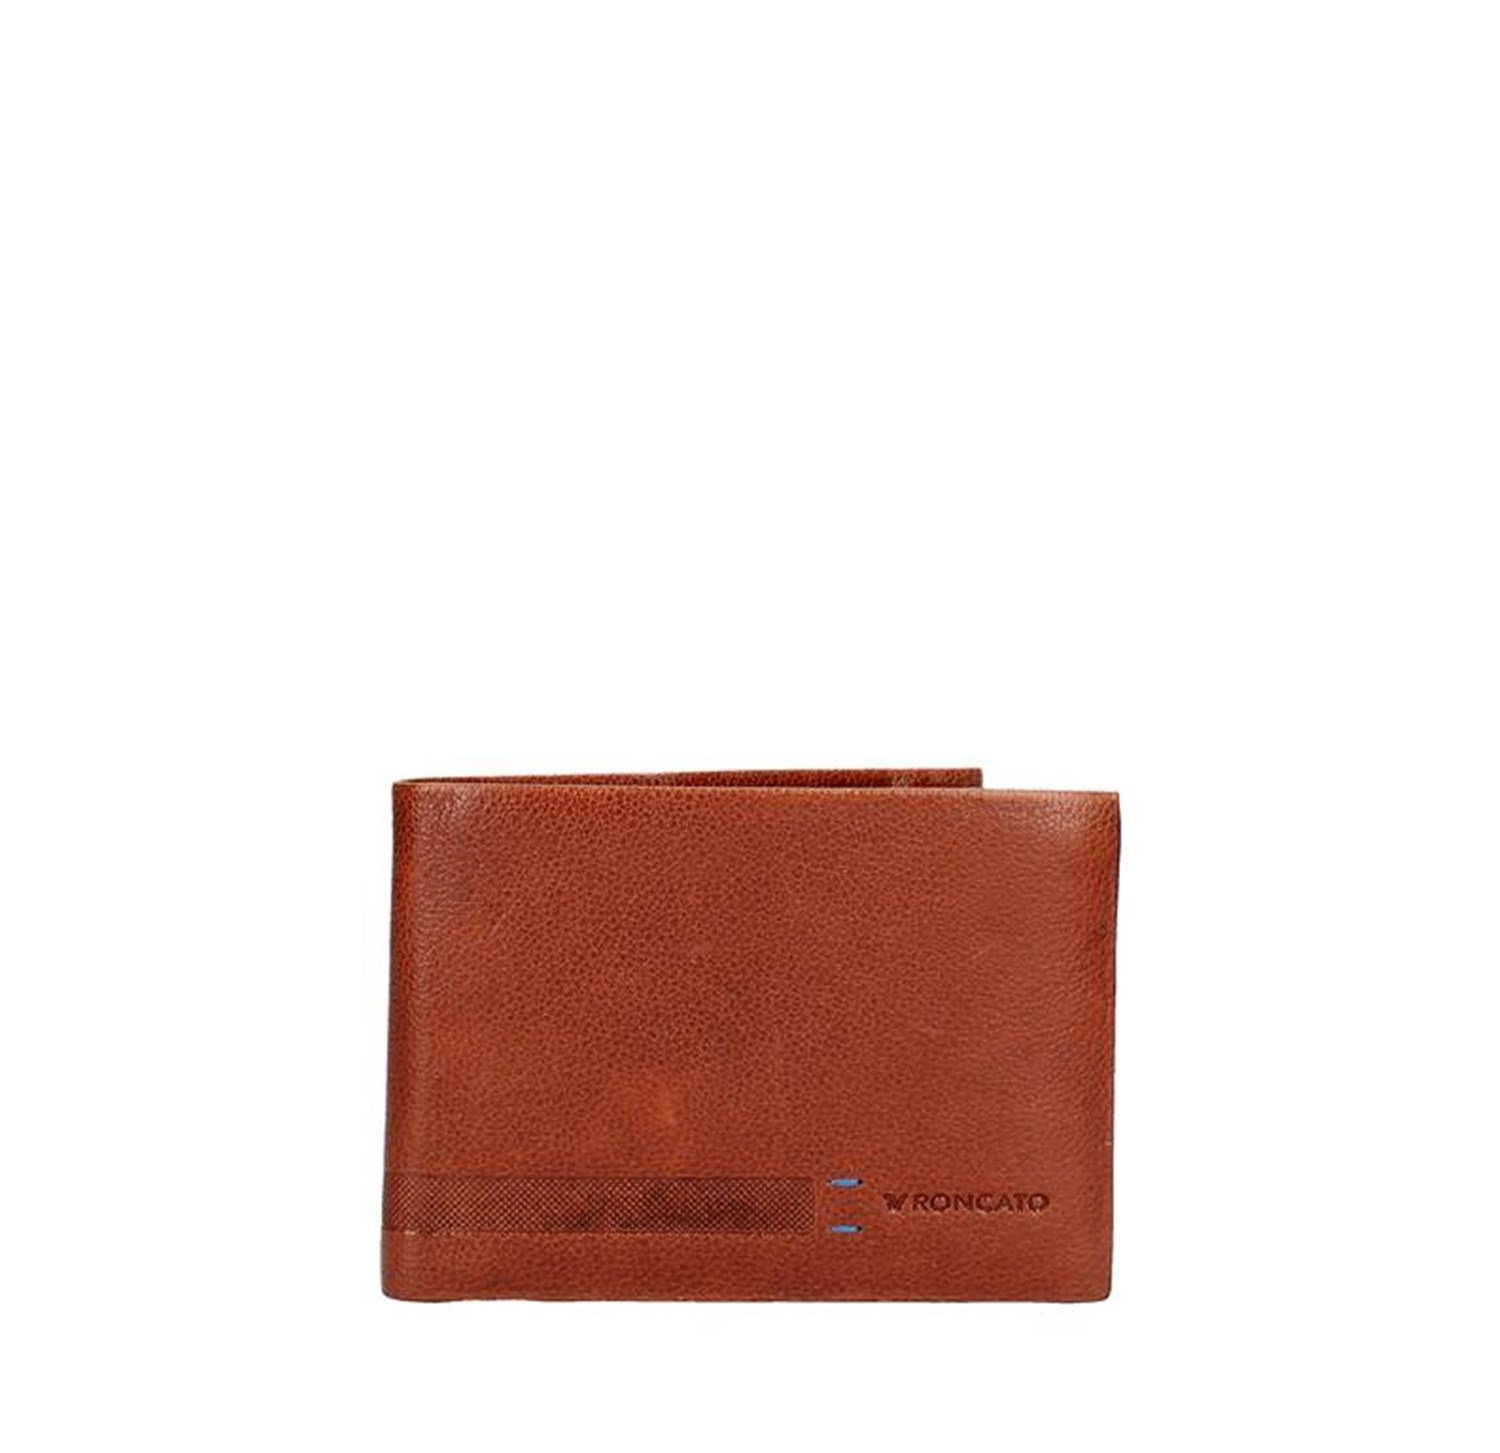 Roncato Accessories Accessories Wallets BROWN 410482